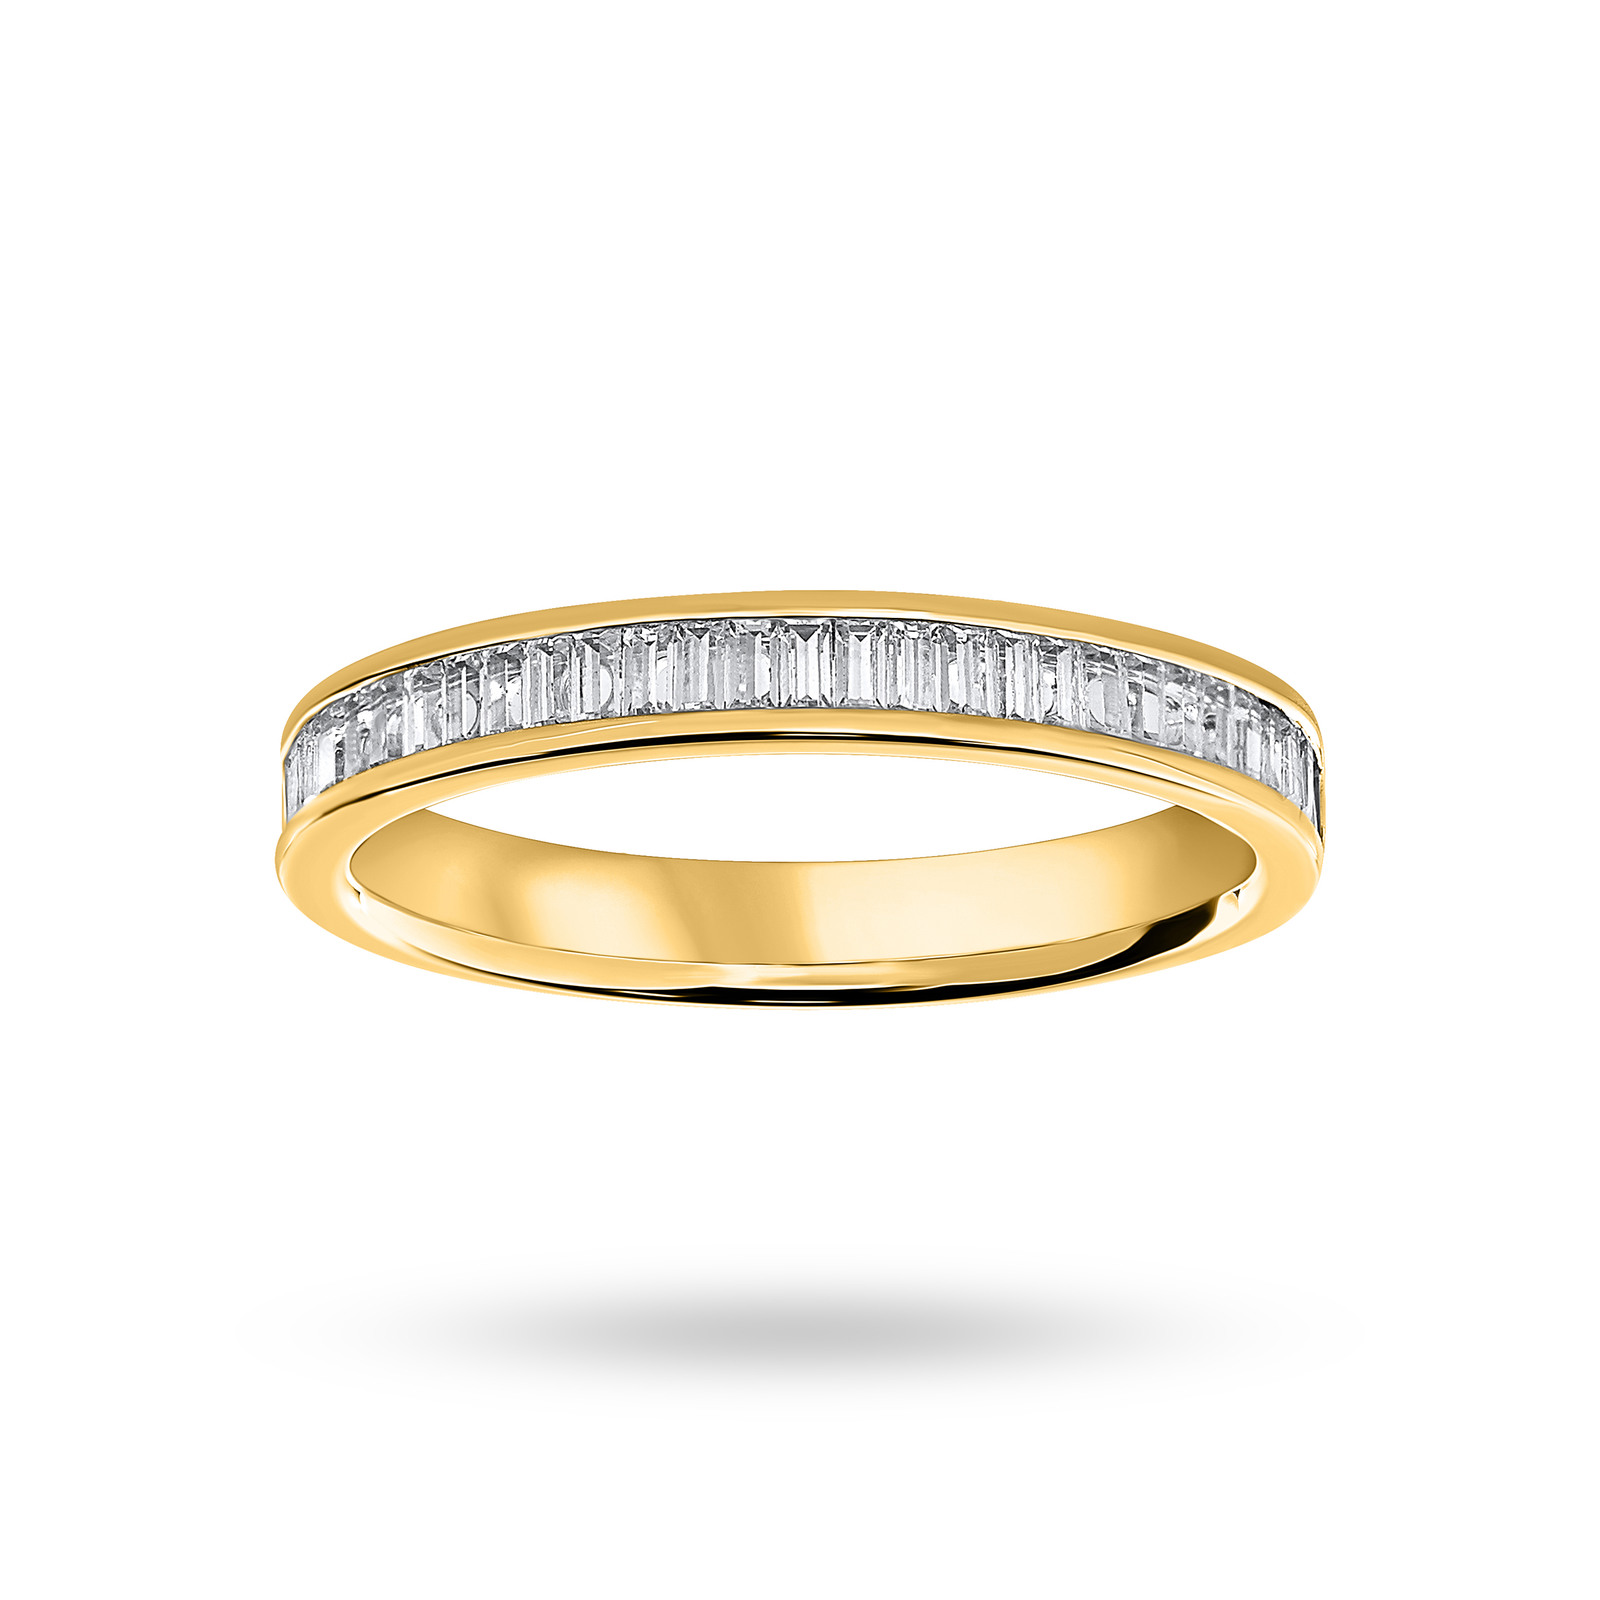 18 Carat Yellow Gold 0.33 Carat Baguette Cut Half Eternity Ring